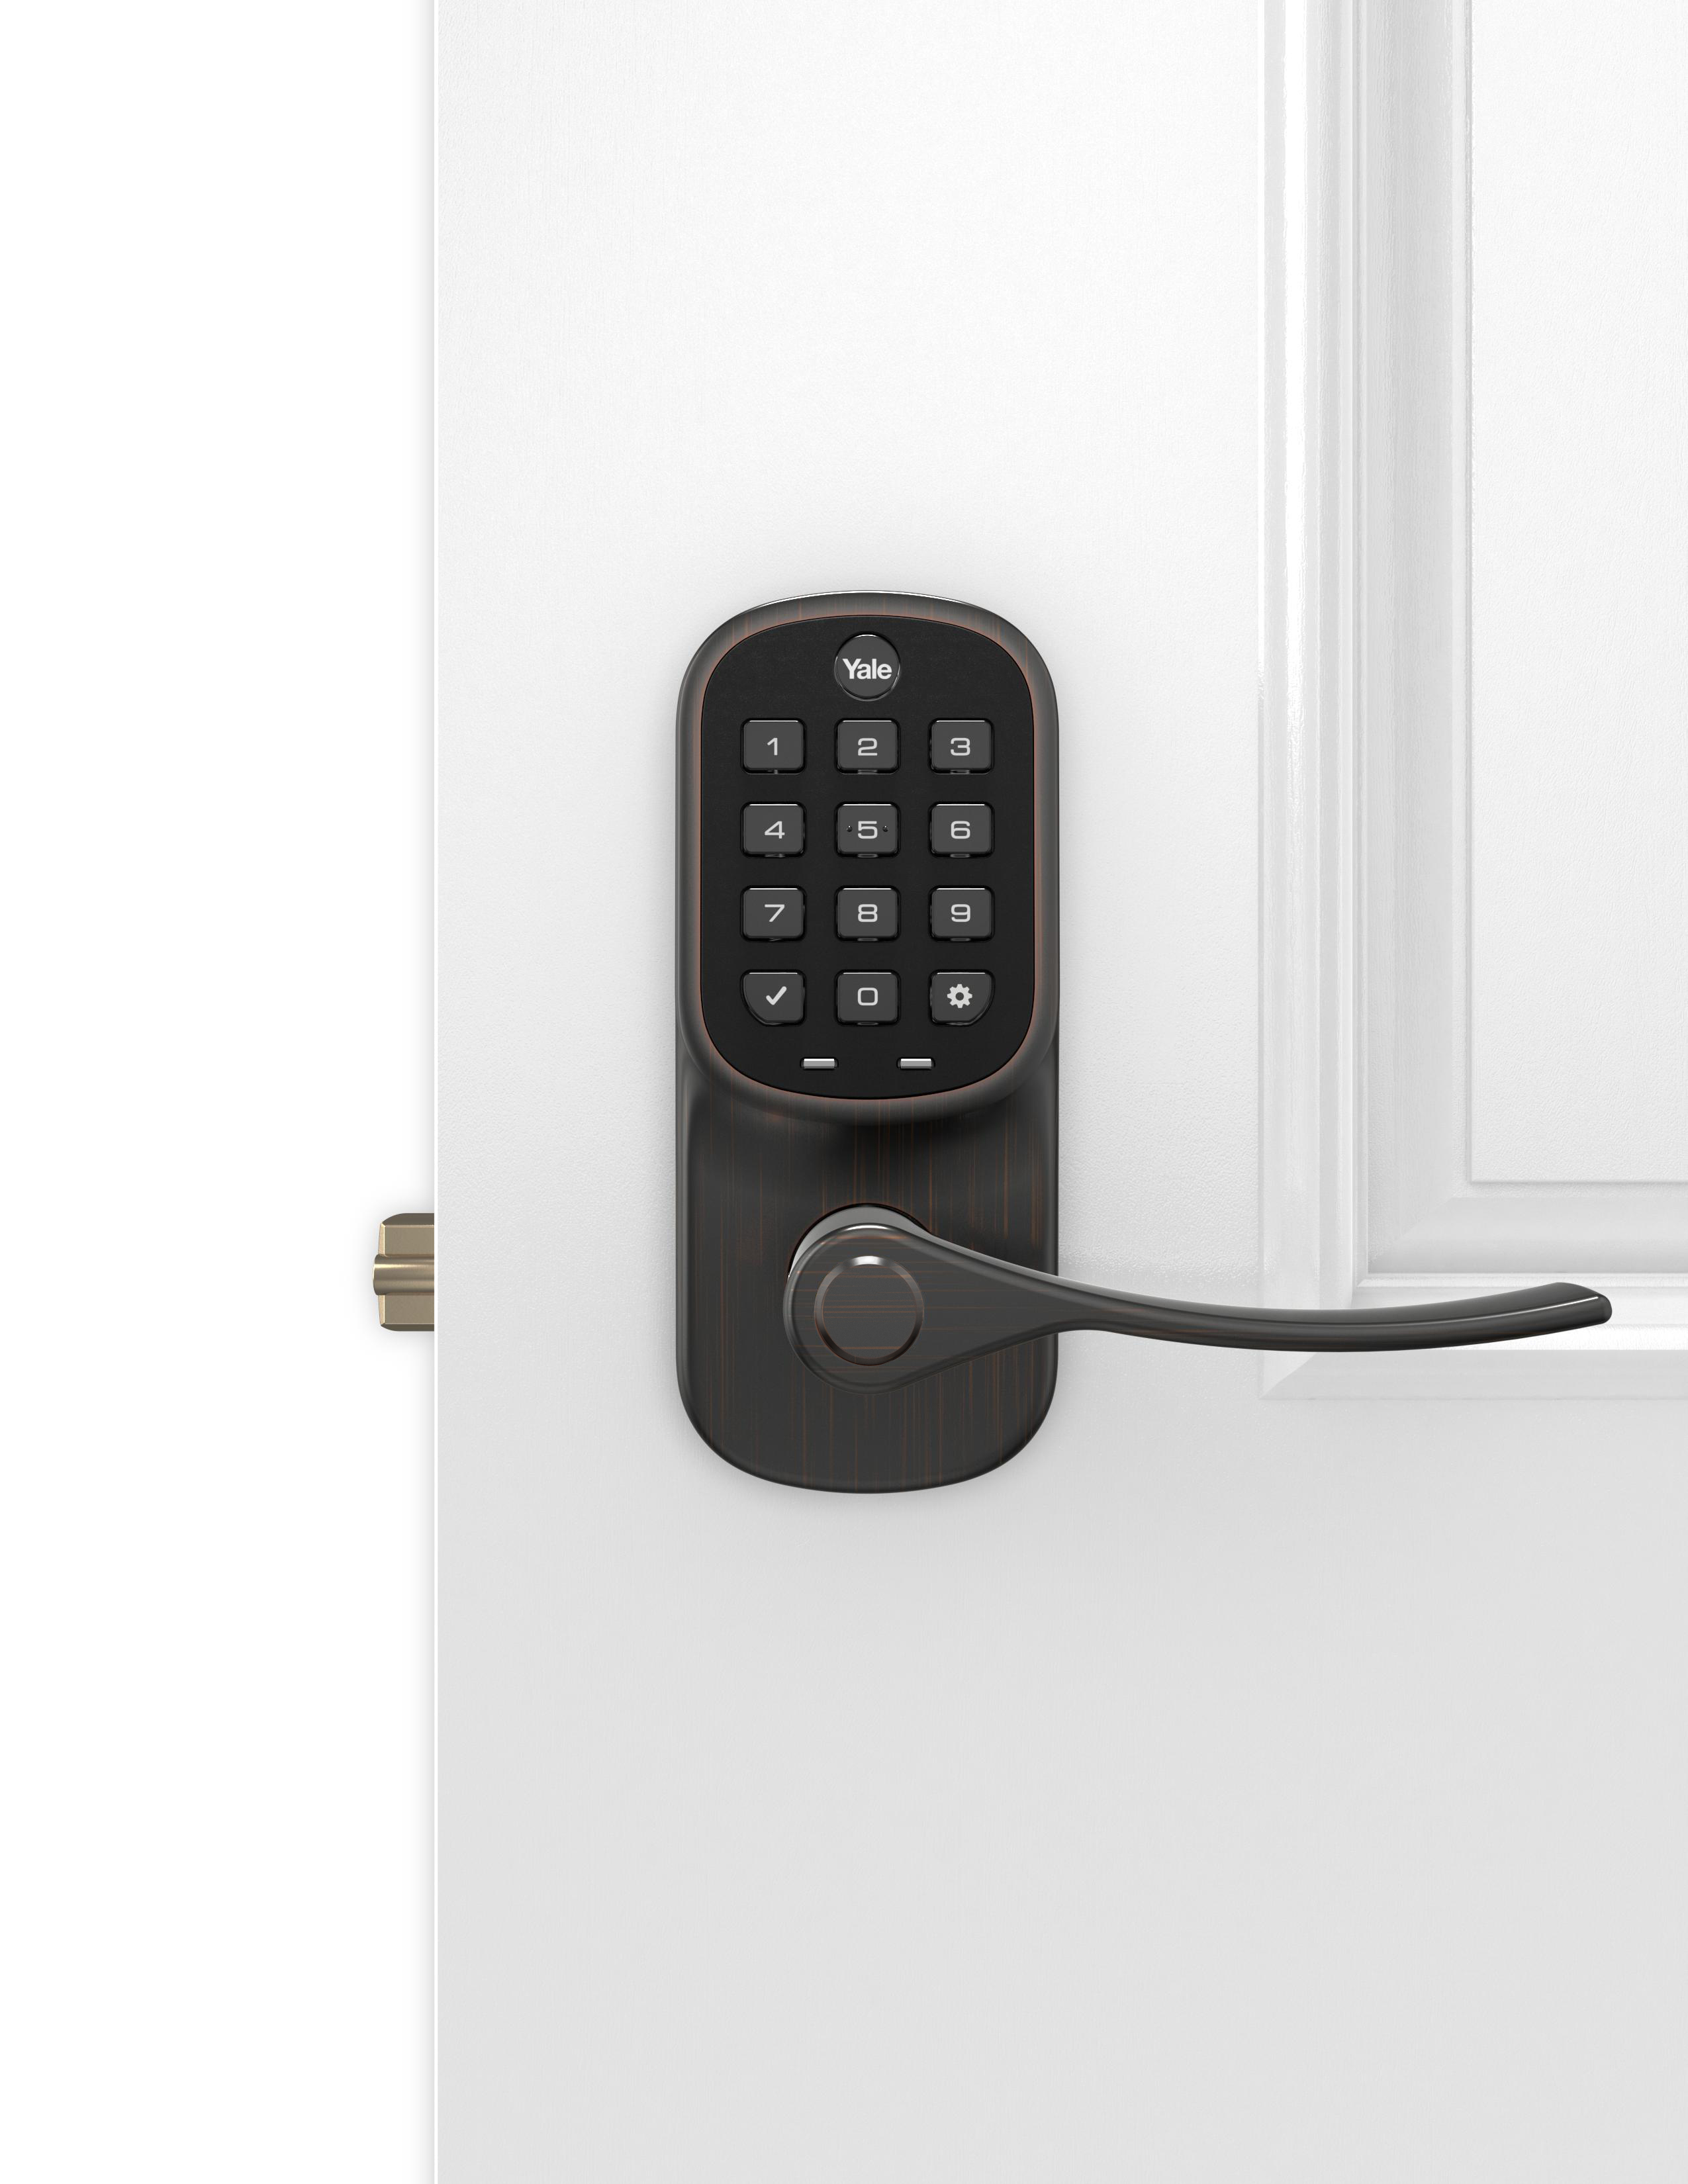 August adds third-party door locks to its smart home